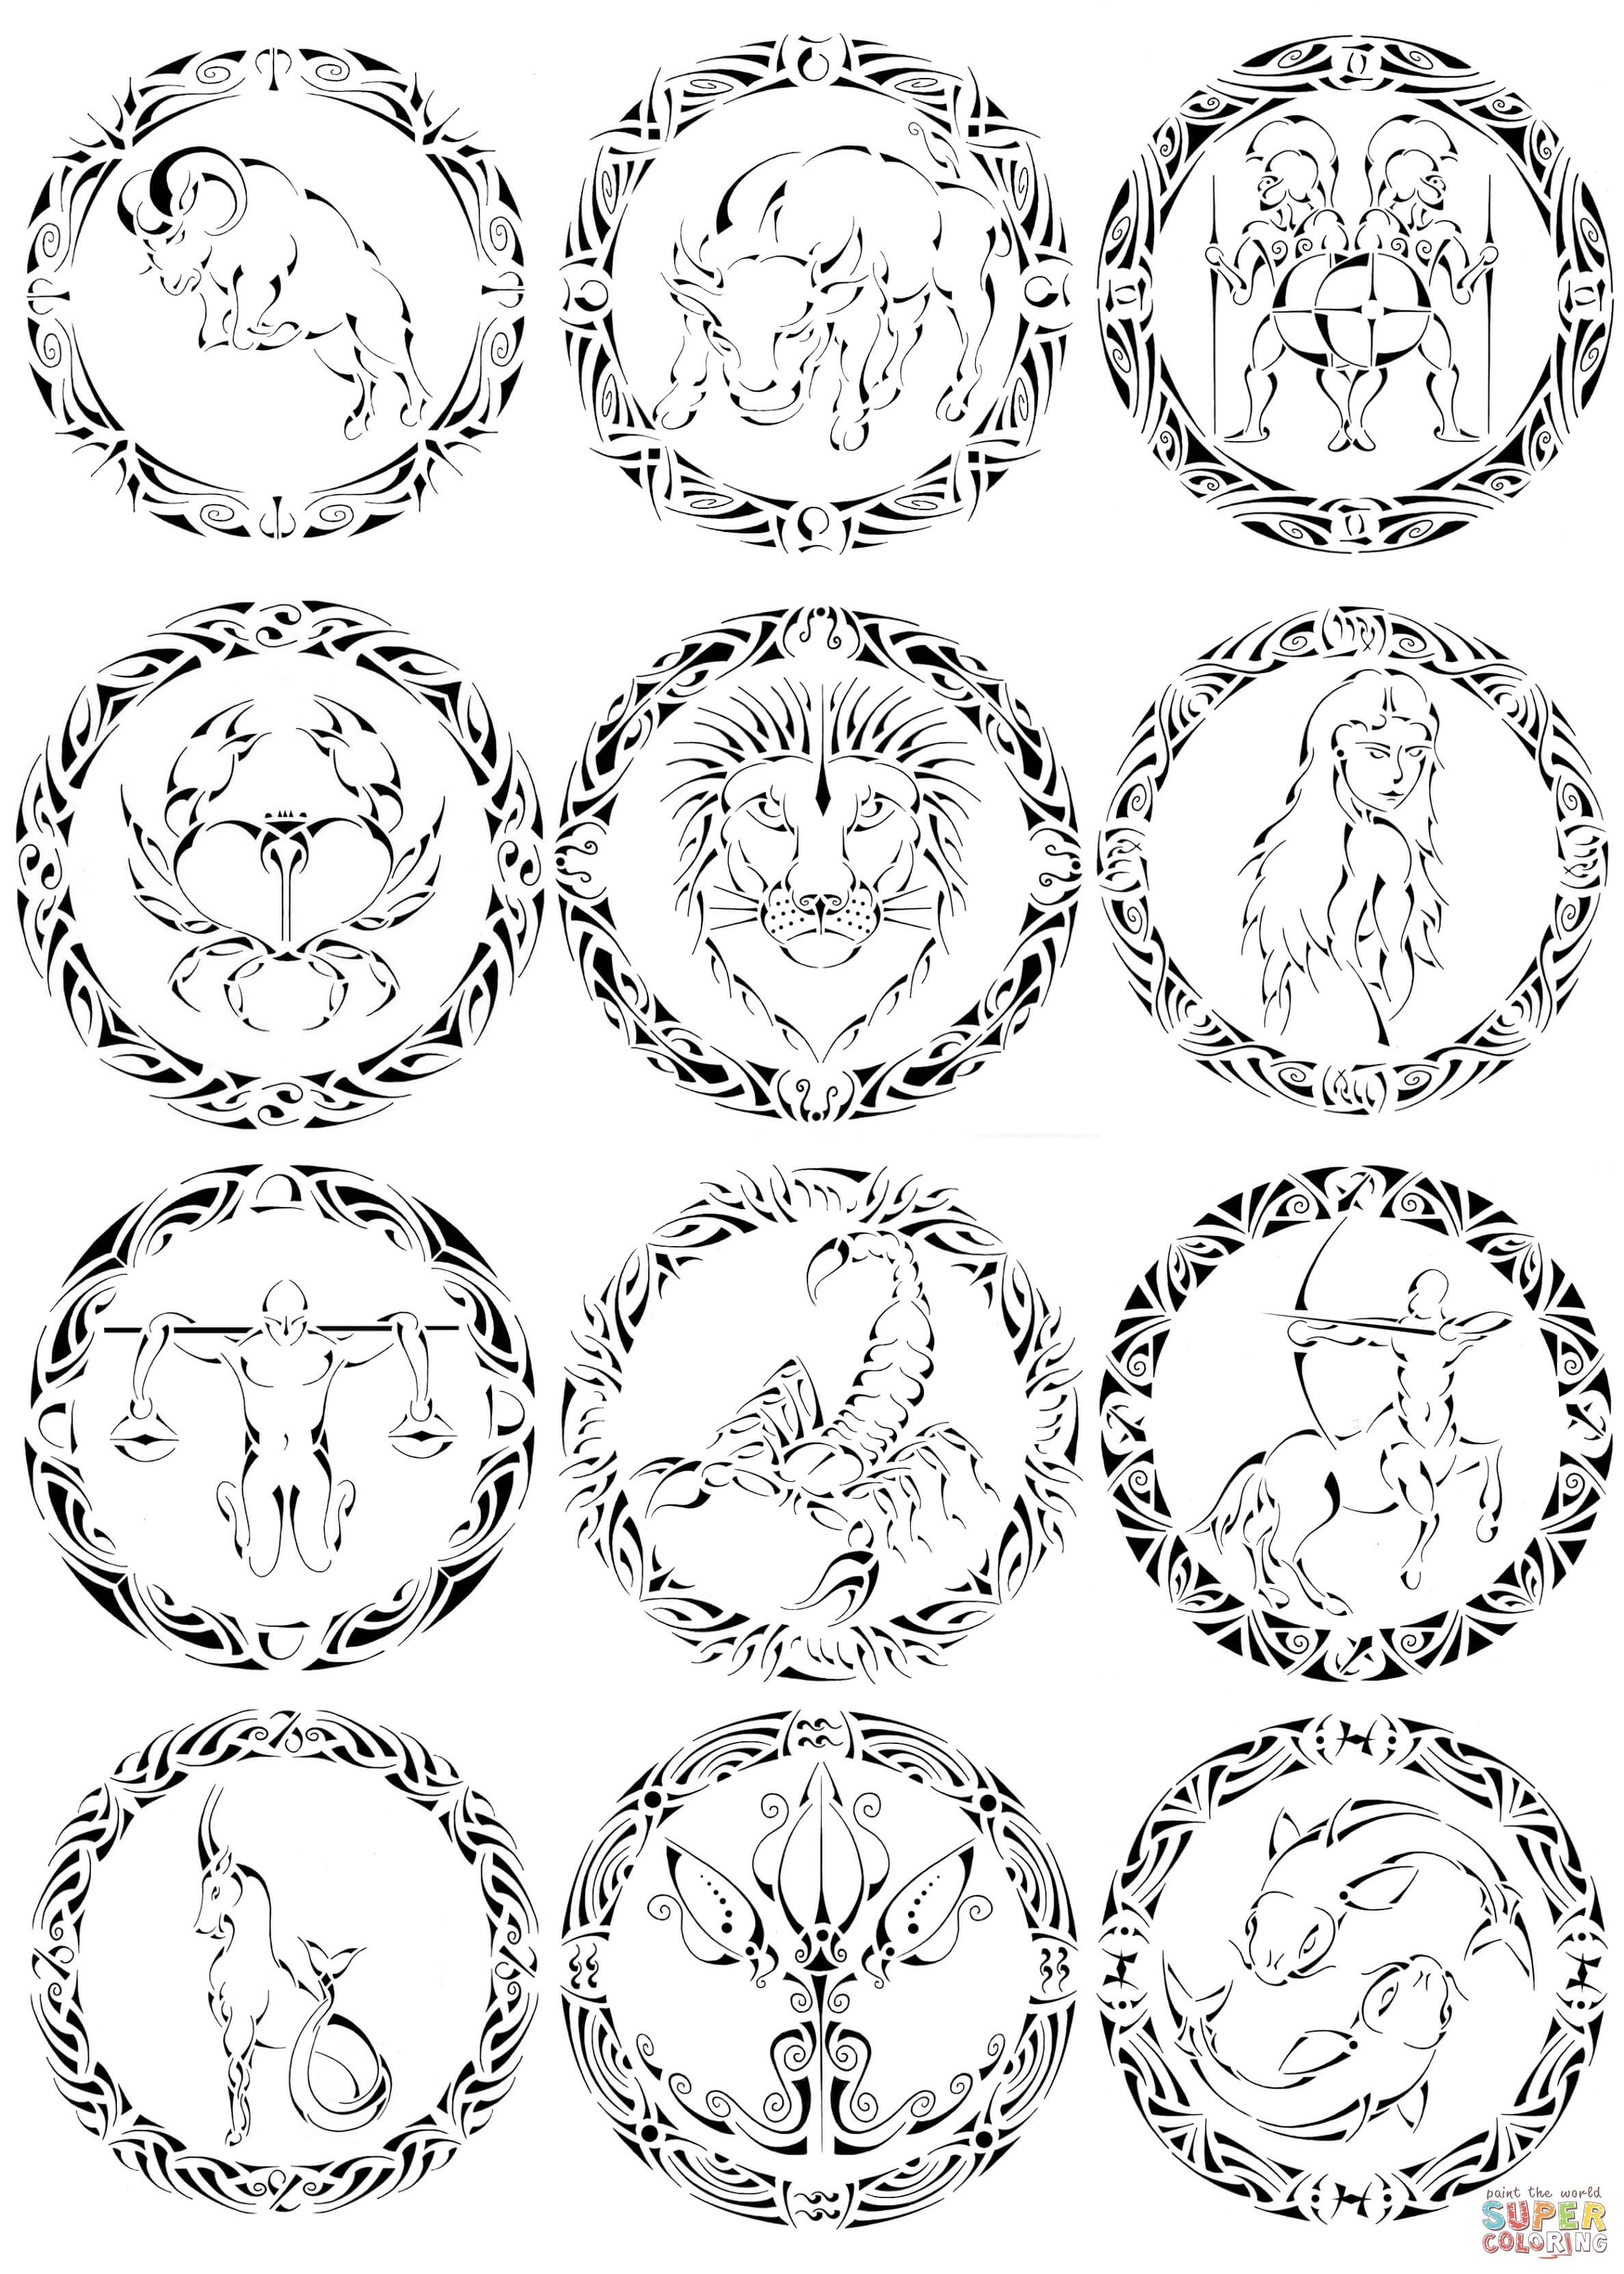 picture about Chinese Zodiac Printable identified as Chinese Zodiac Coloring Web pages at  No cost for